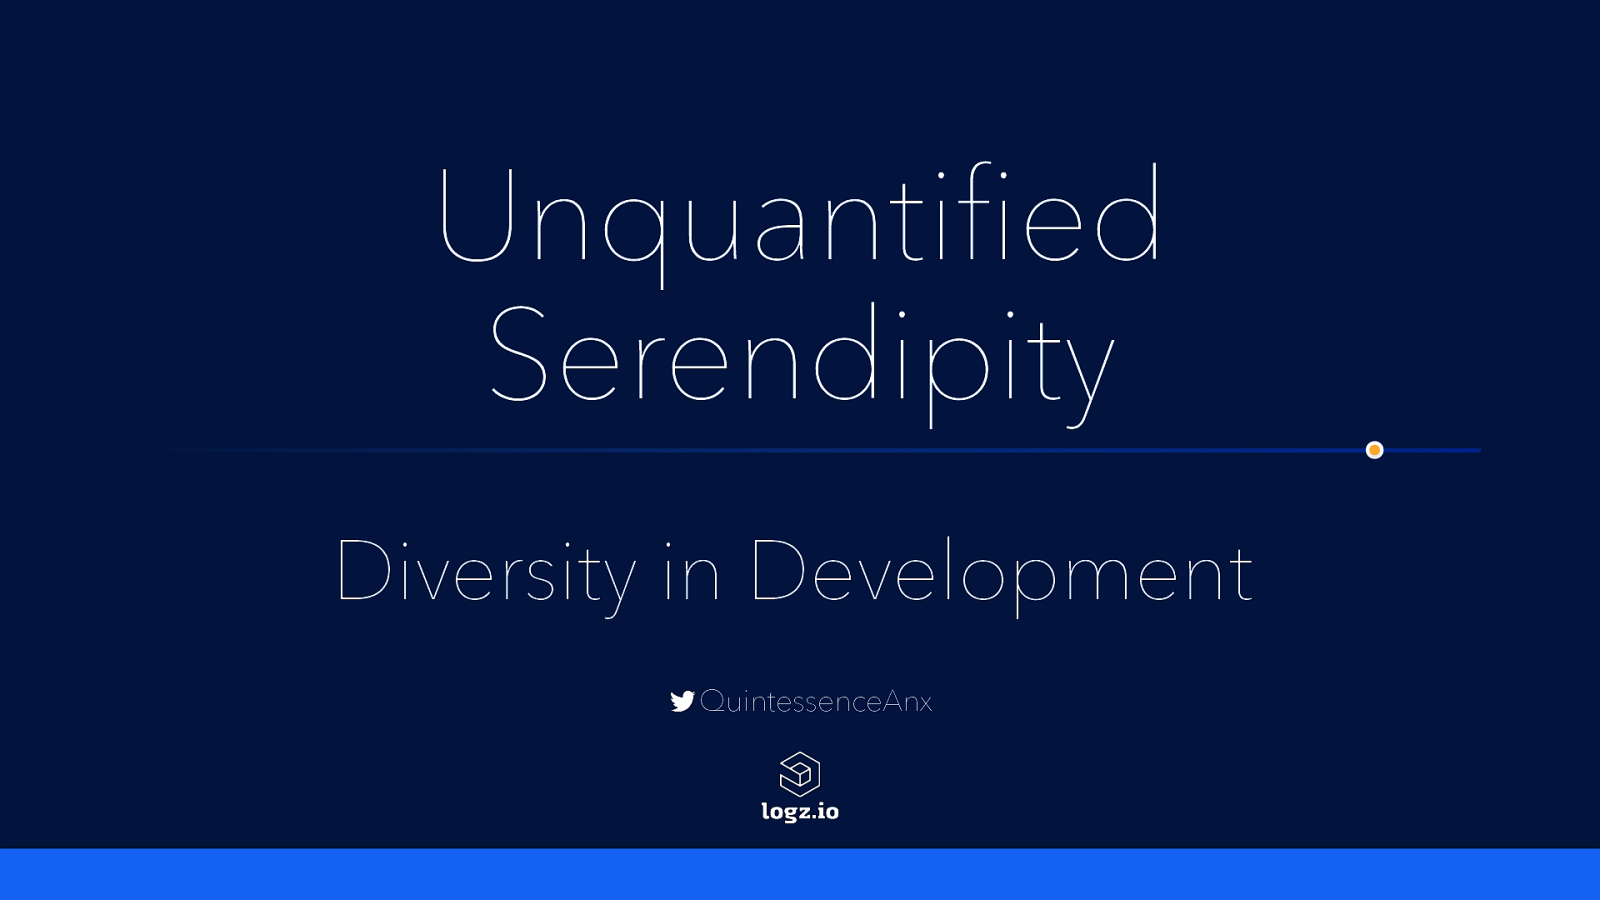 Unquantified Serendipity: Diversity in Development